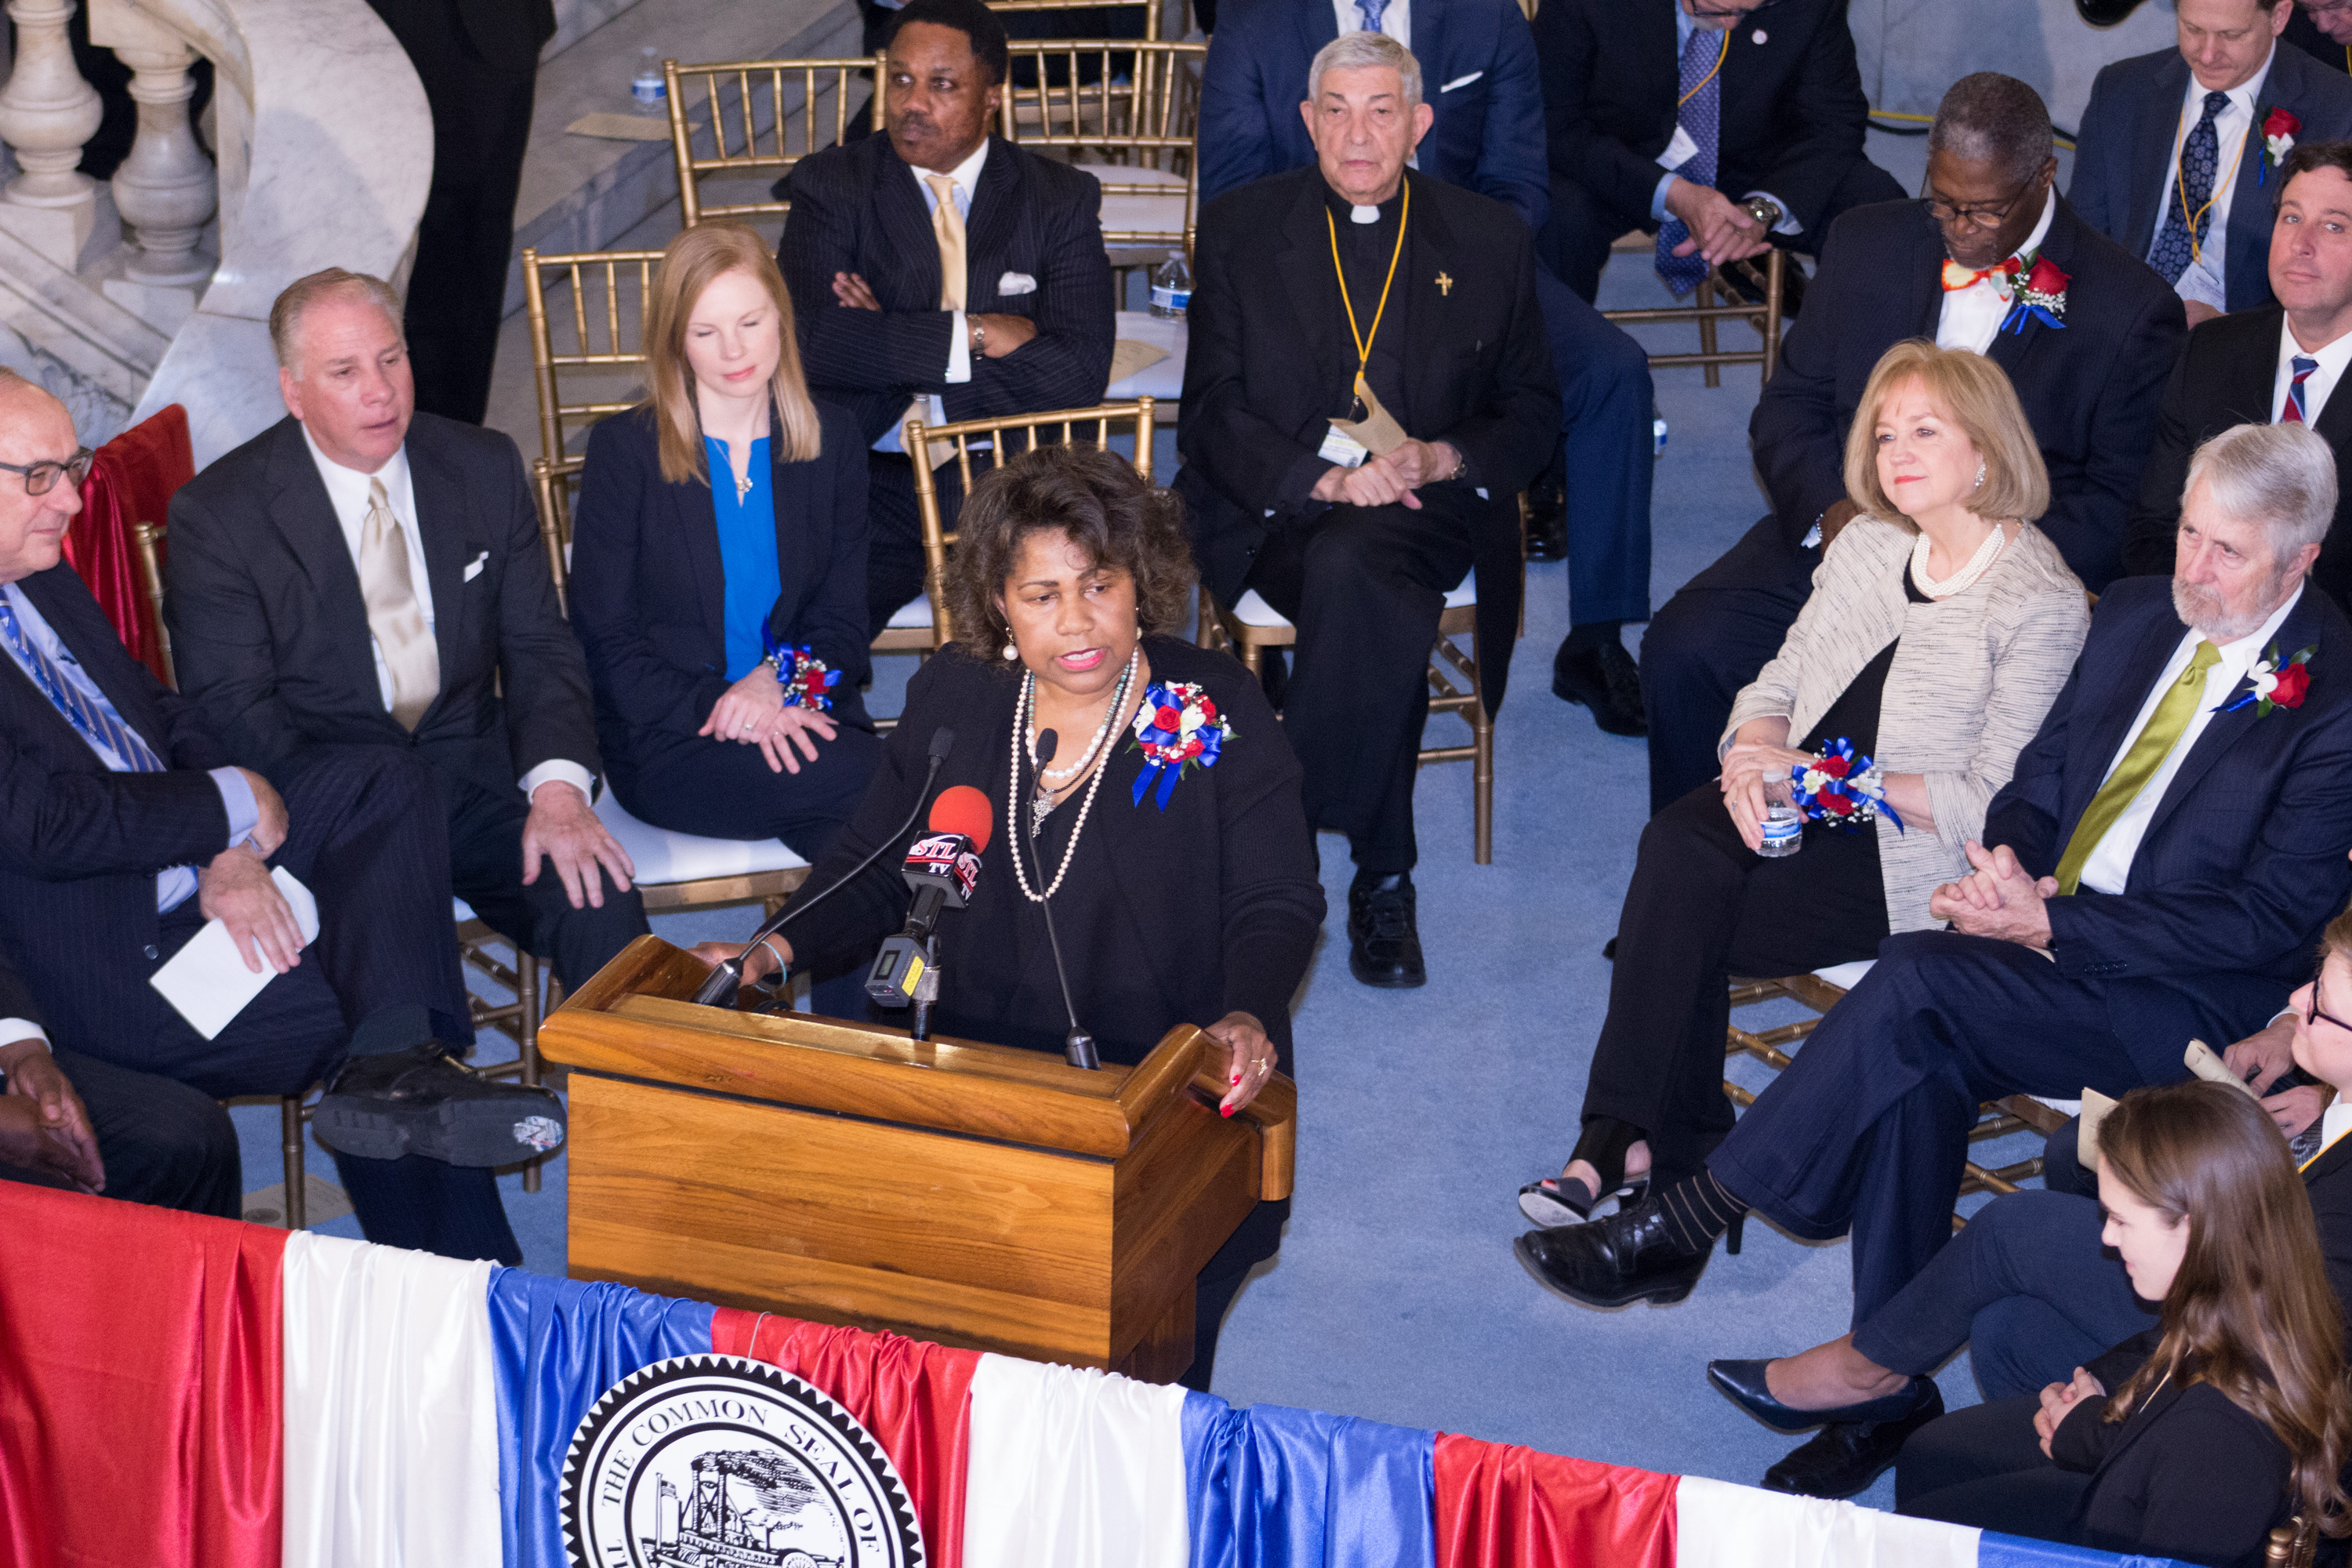 Comptroller Darlene Green speaking at 2017 Inauguration